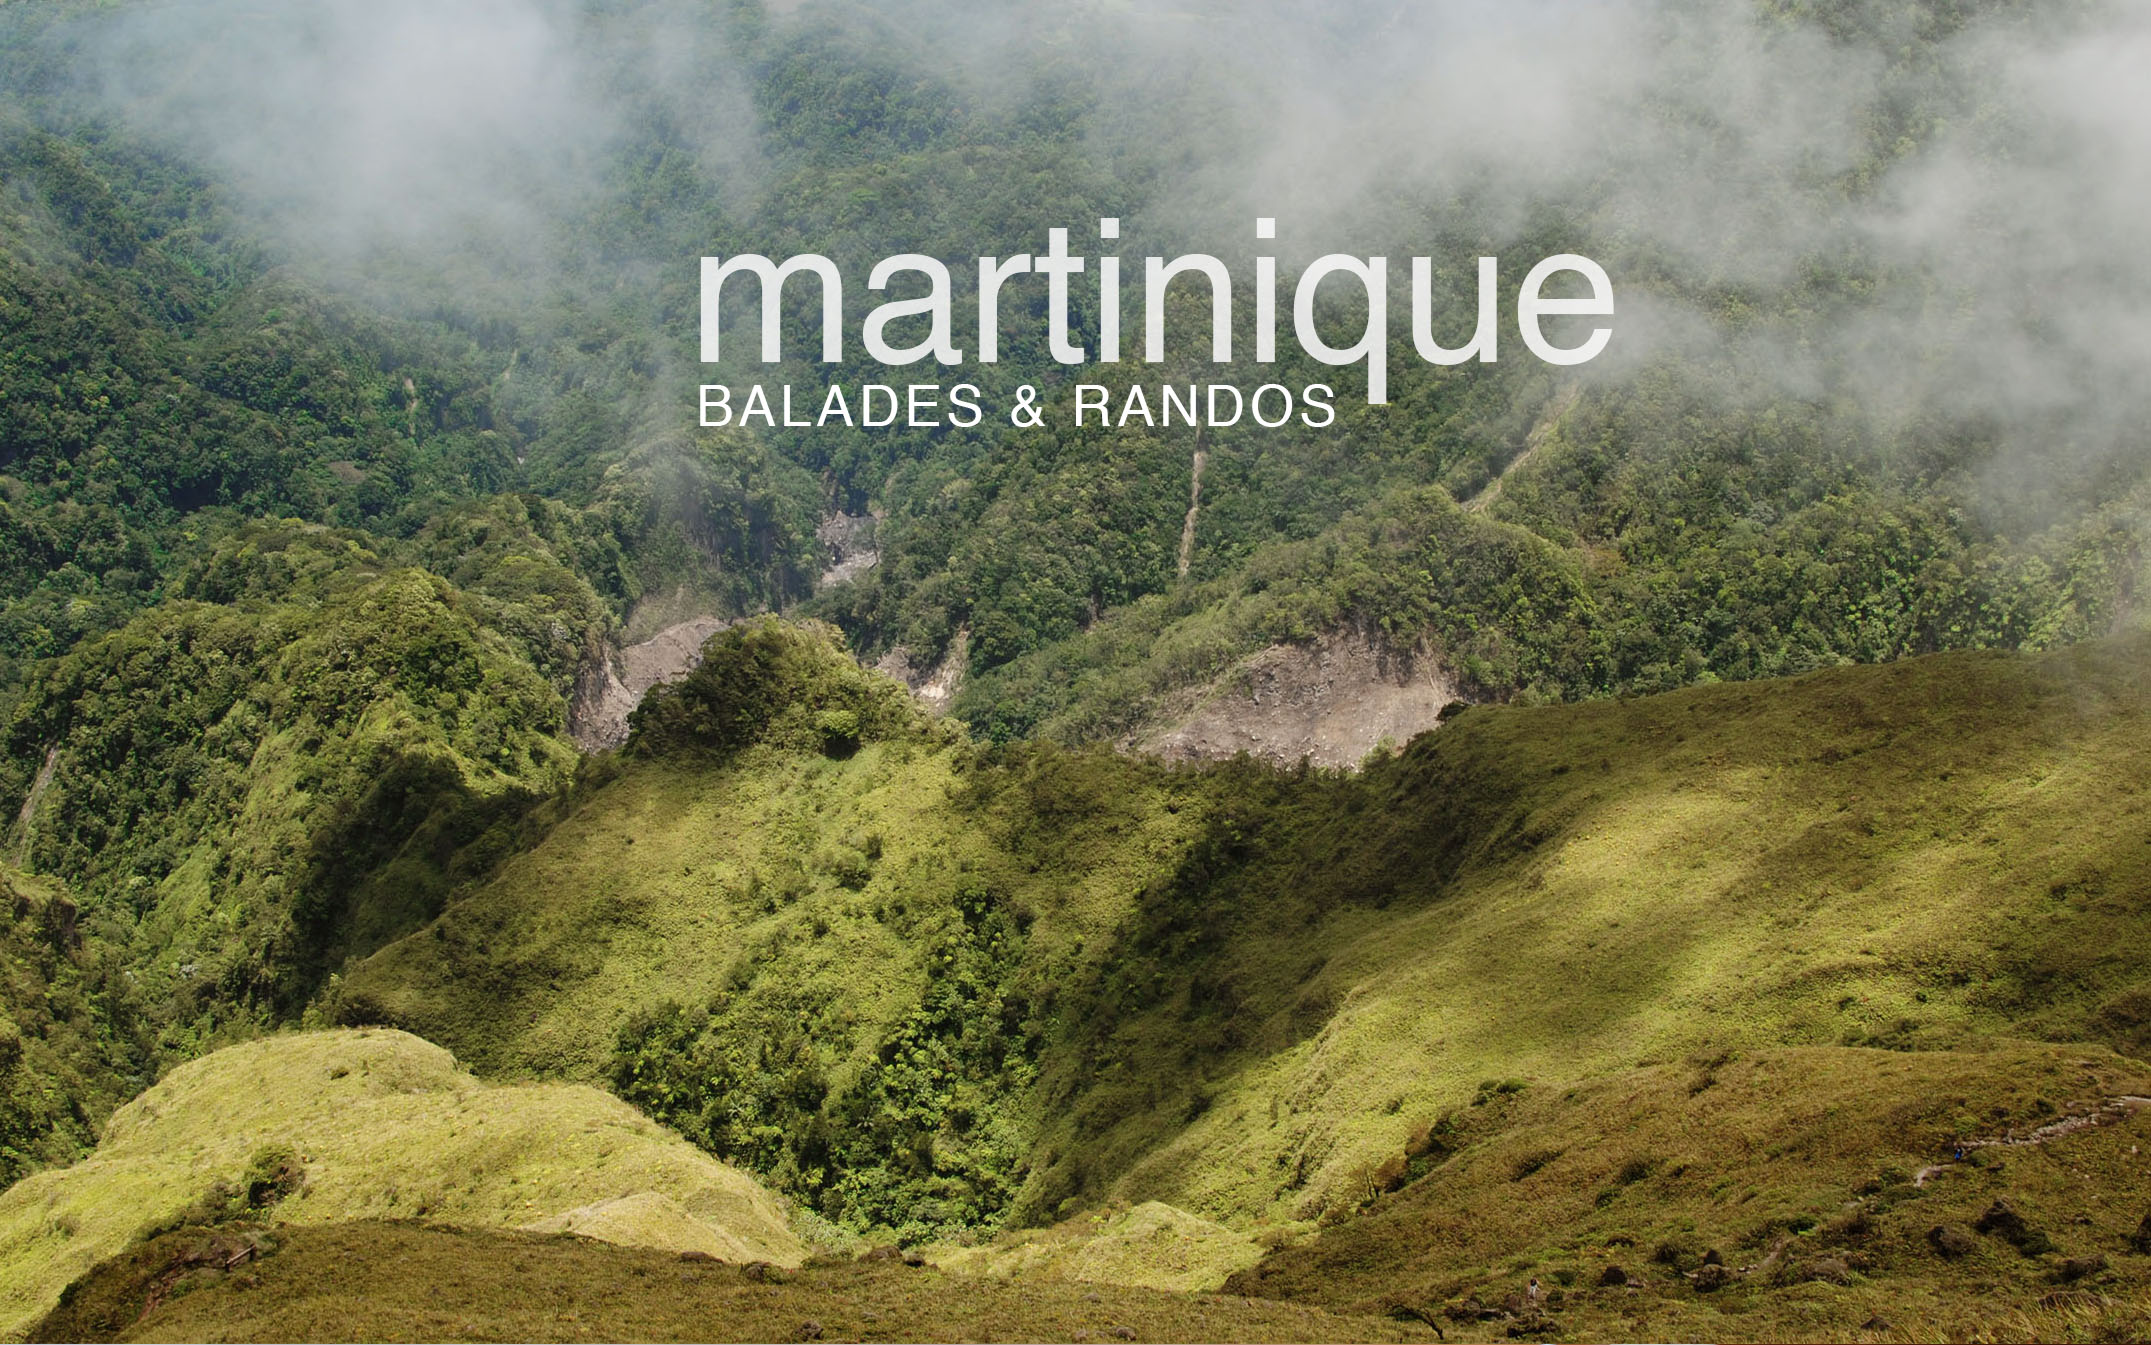 BALADES & RANDO EN MARTINIQUE